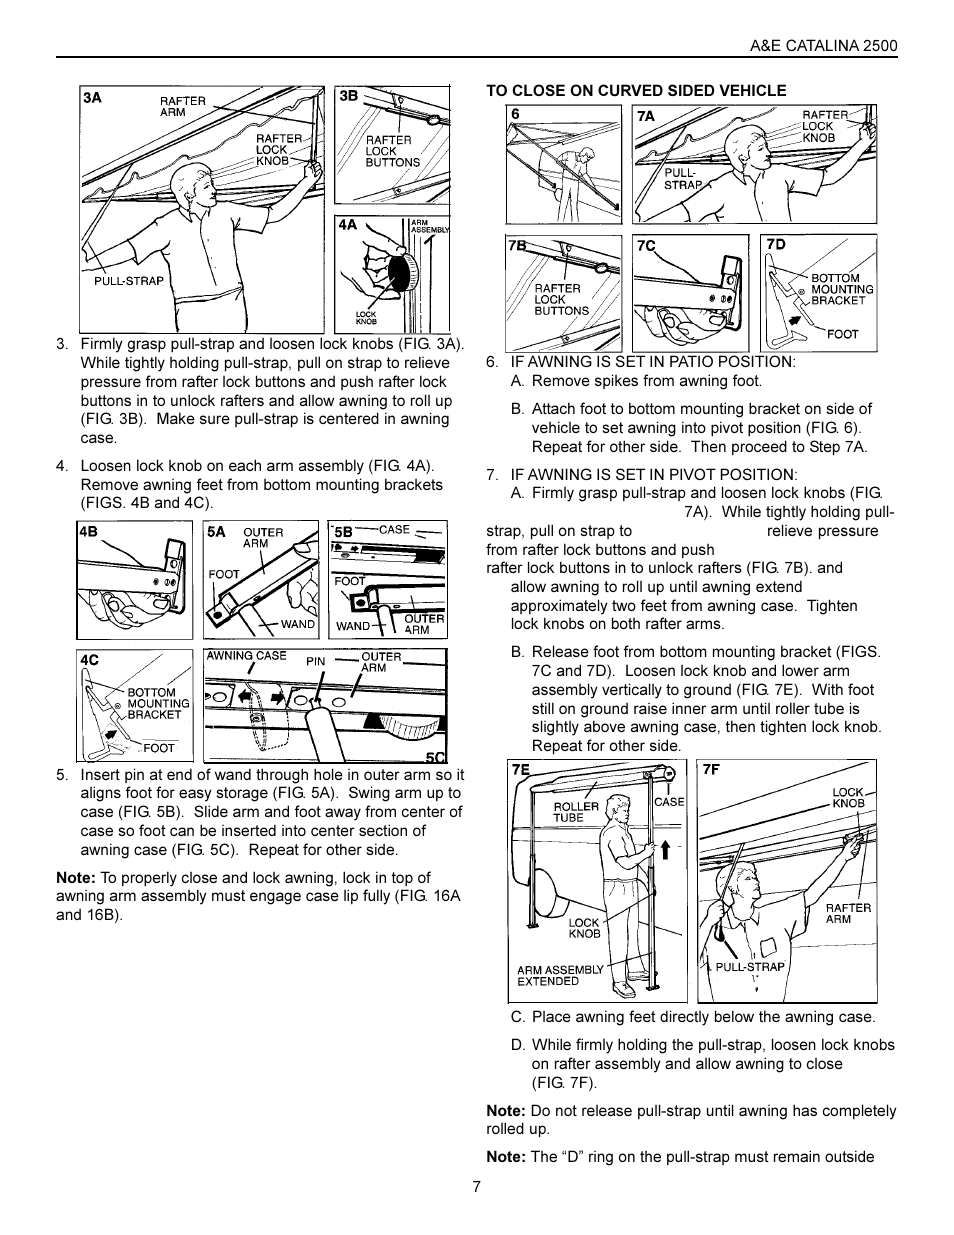 Dometic 2500 User Manual | Page 7 / 8